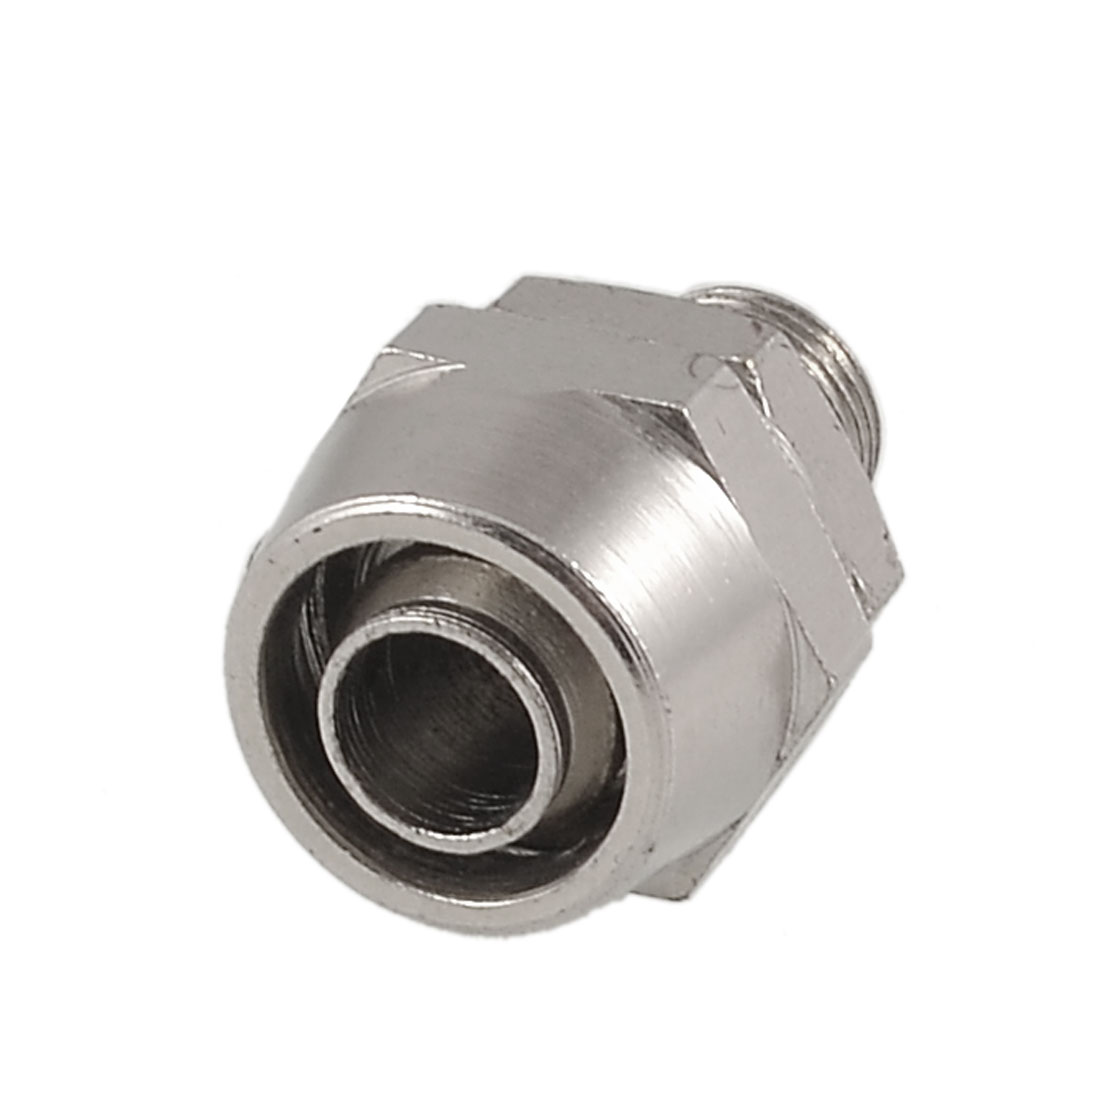 "0.39"" Male Threaded 0.31"" Pipe Air Pneumatic Quick Coupler Connector Silver Tone"